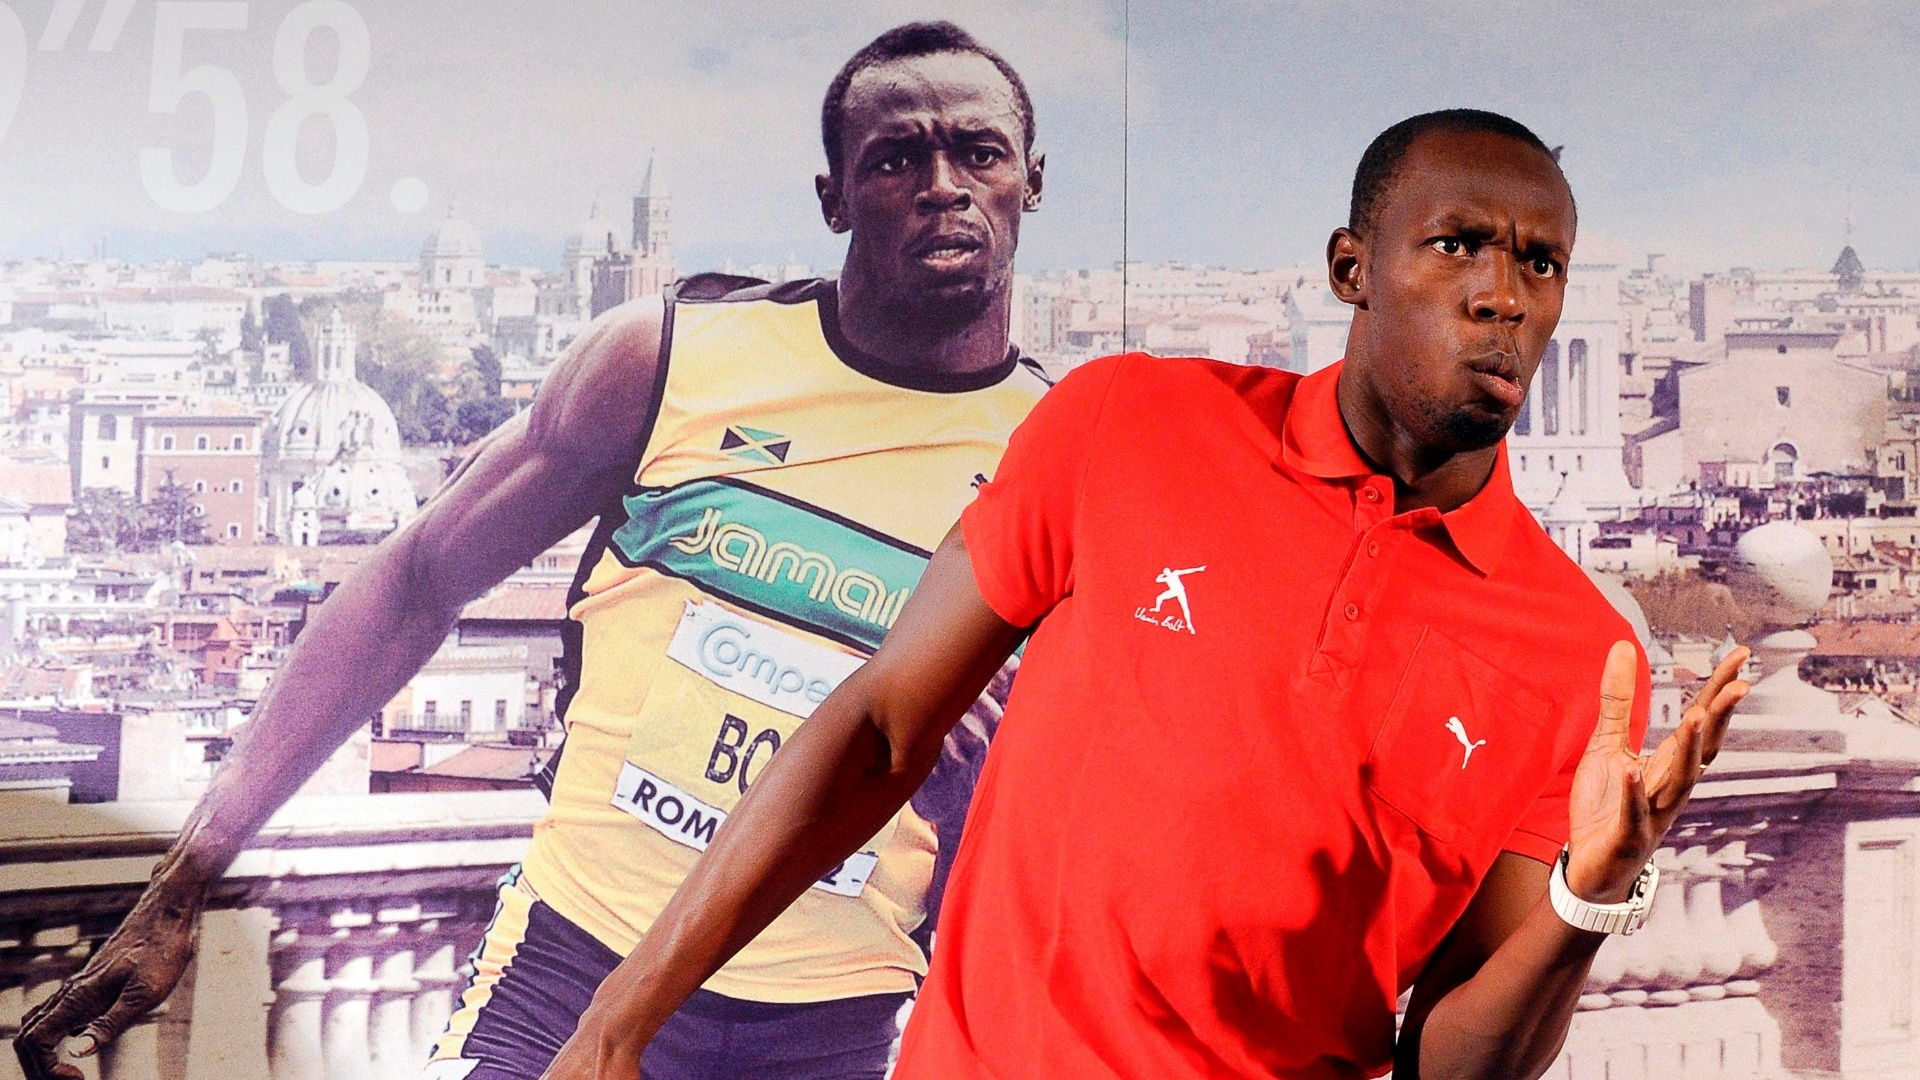 Usain Bolt faz pose em frente a um cartaz com a sua imagem em Roma, onde ele disputa a Liga de Diamante